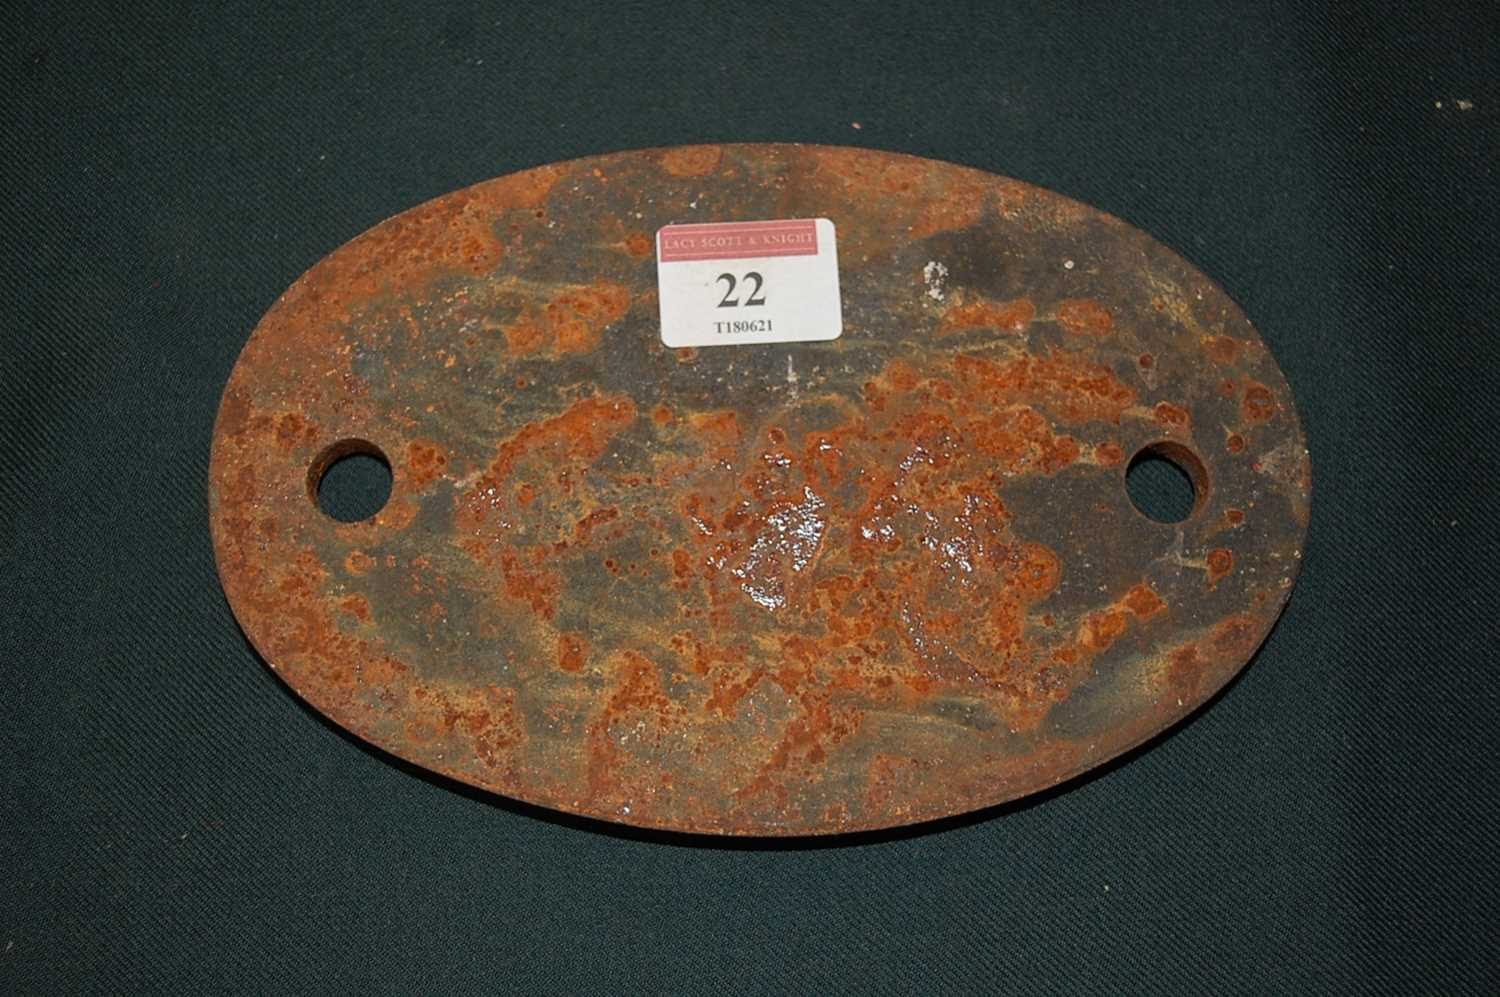 Original Shed Plate, 30a, Stratford, white on blue - Image 3 of 3